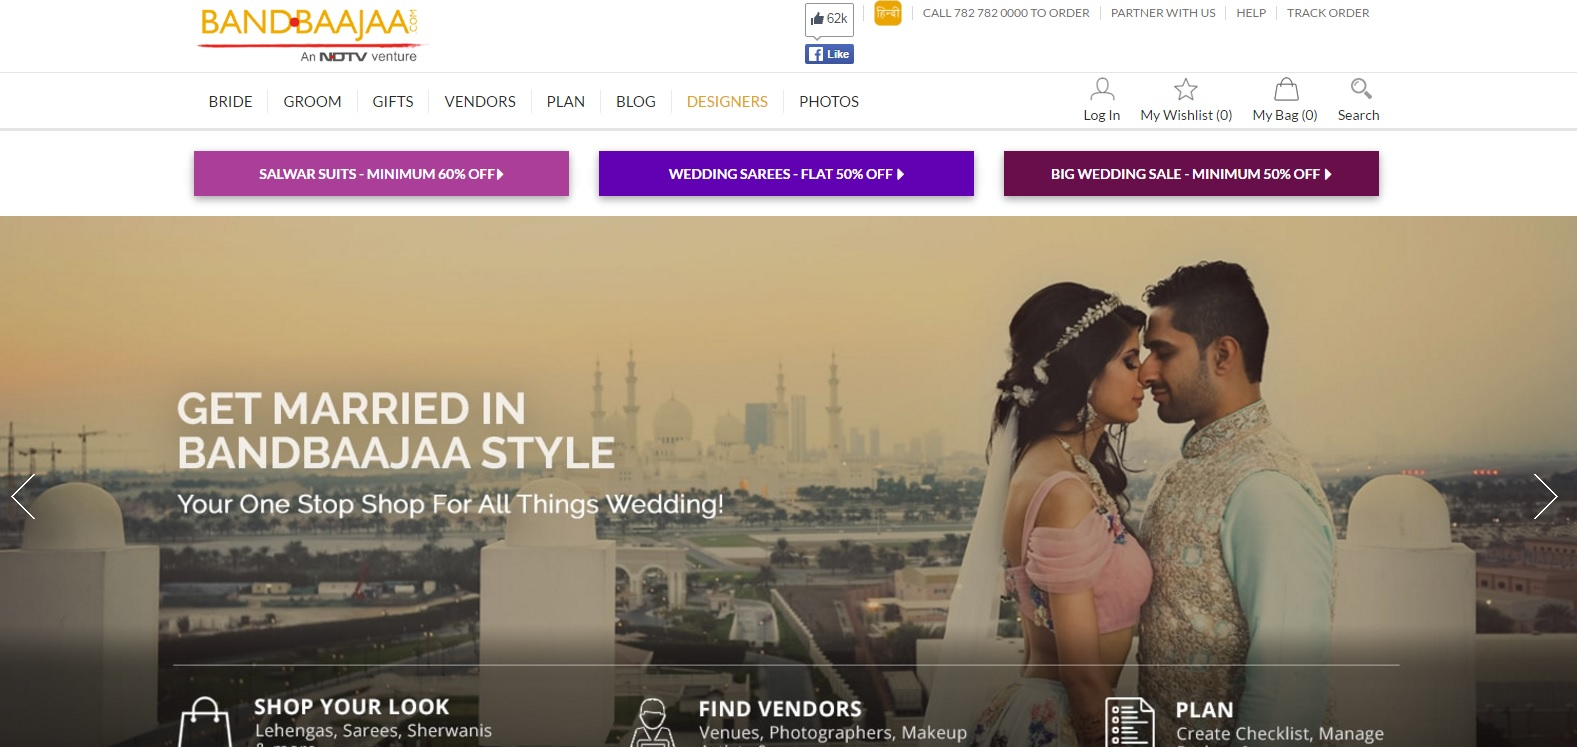 Online Wedding Planner Website In India,2